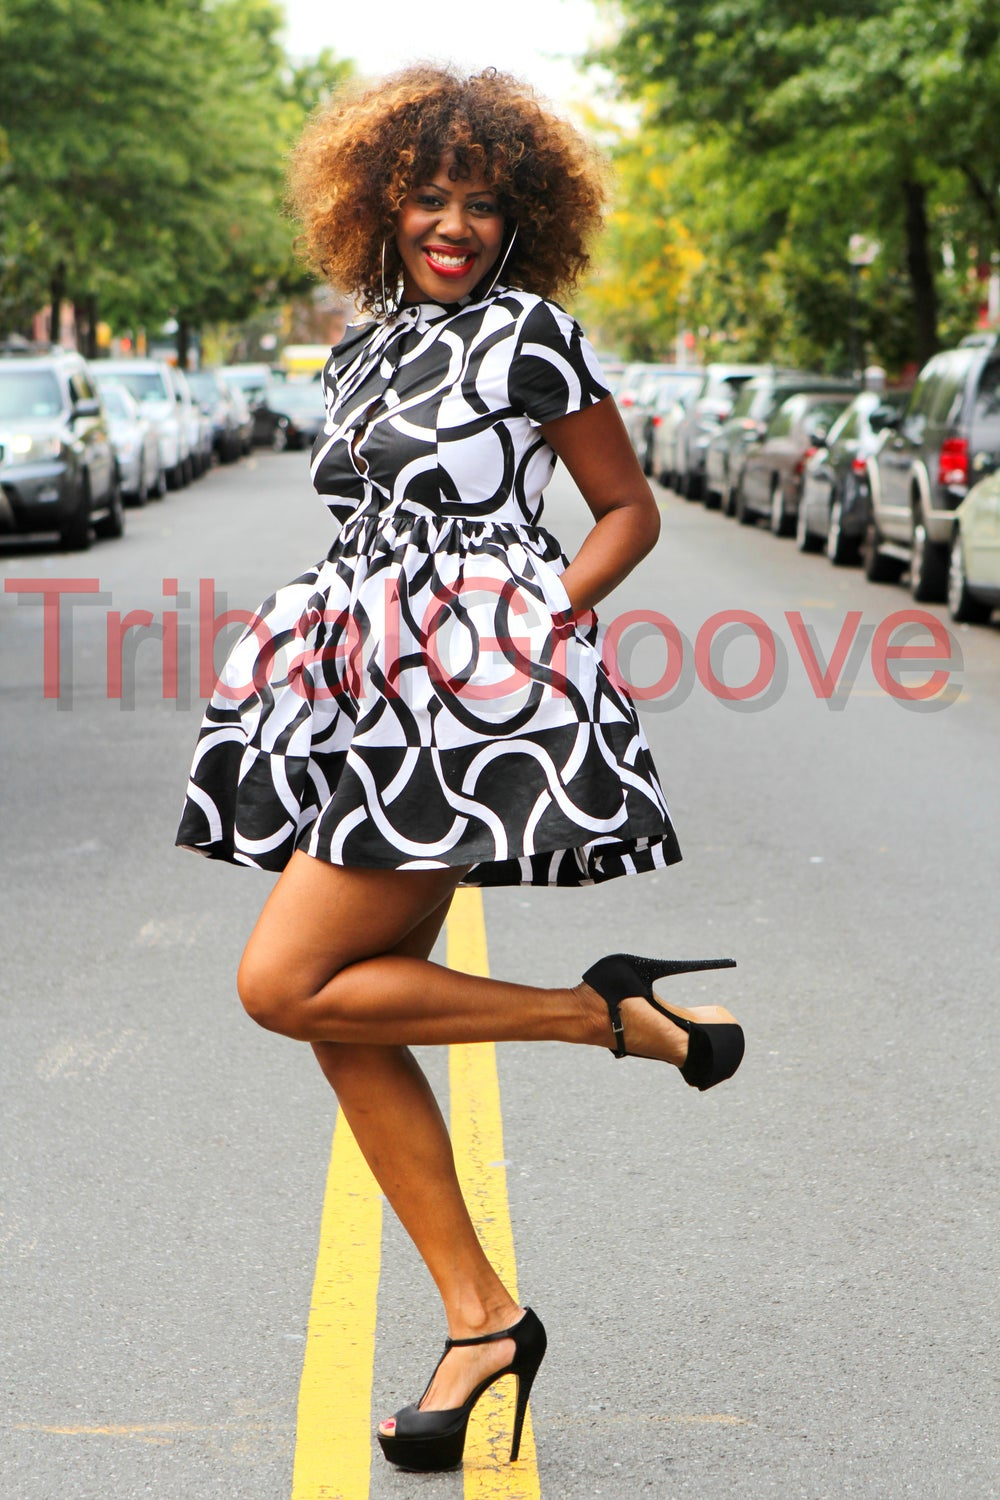 Image of SUSIE - Black and White African Print Mini Dress - Sizes S-XL